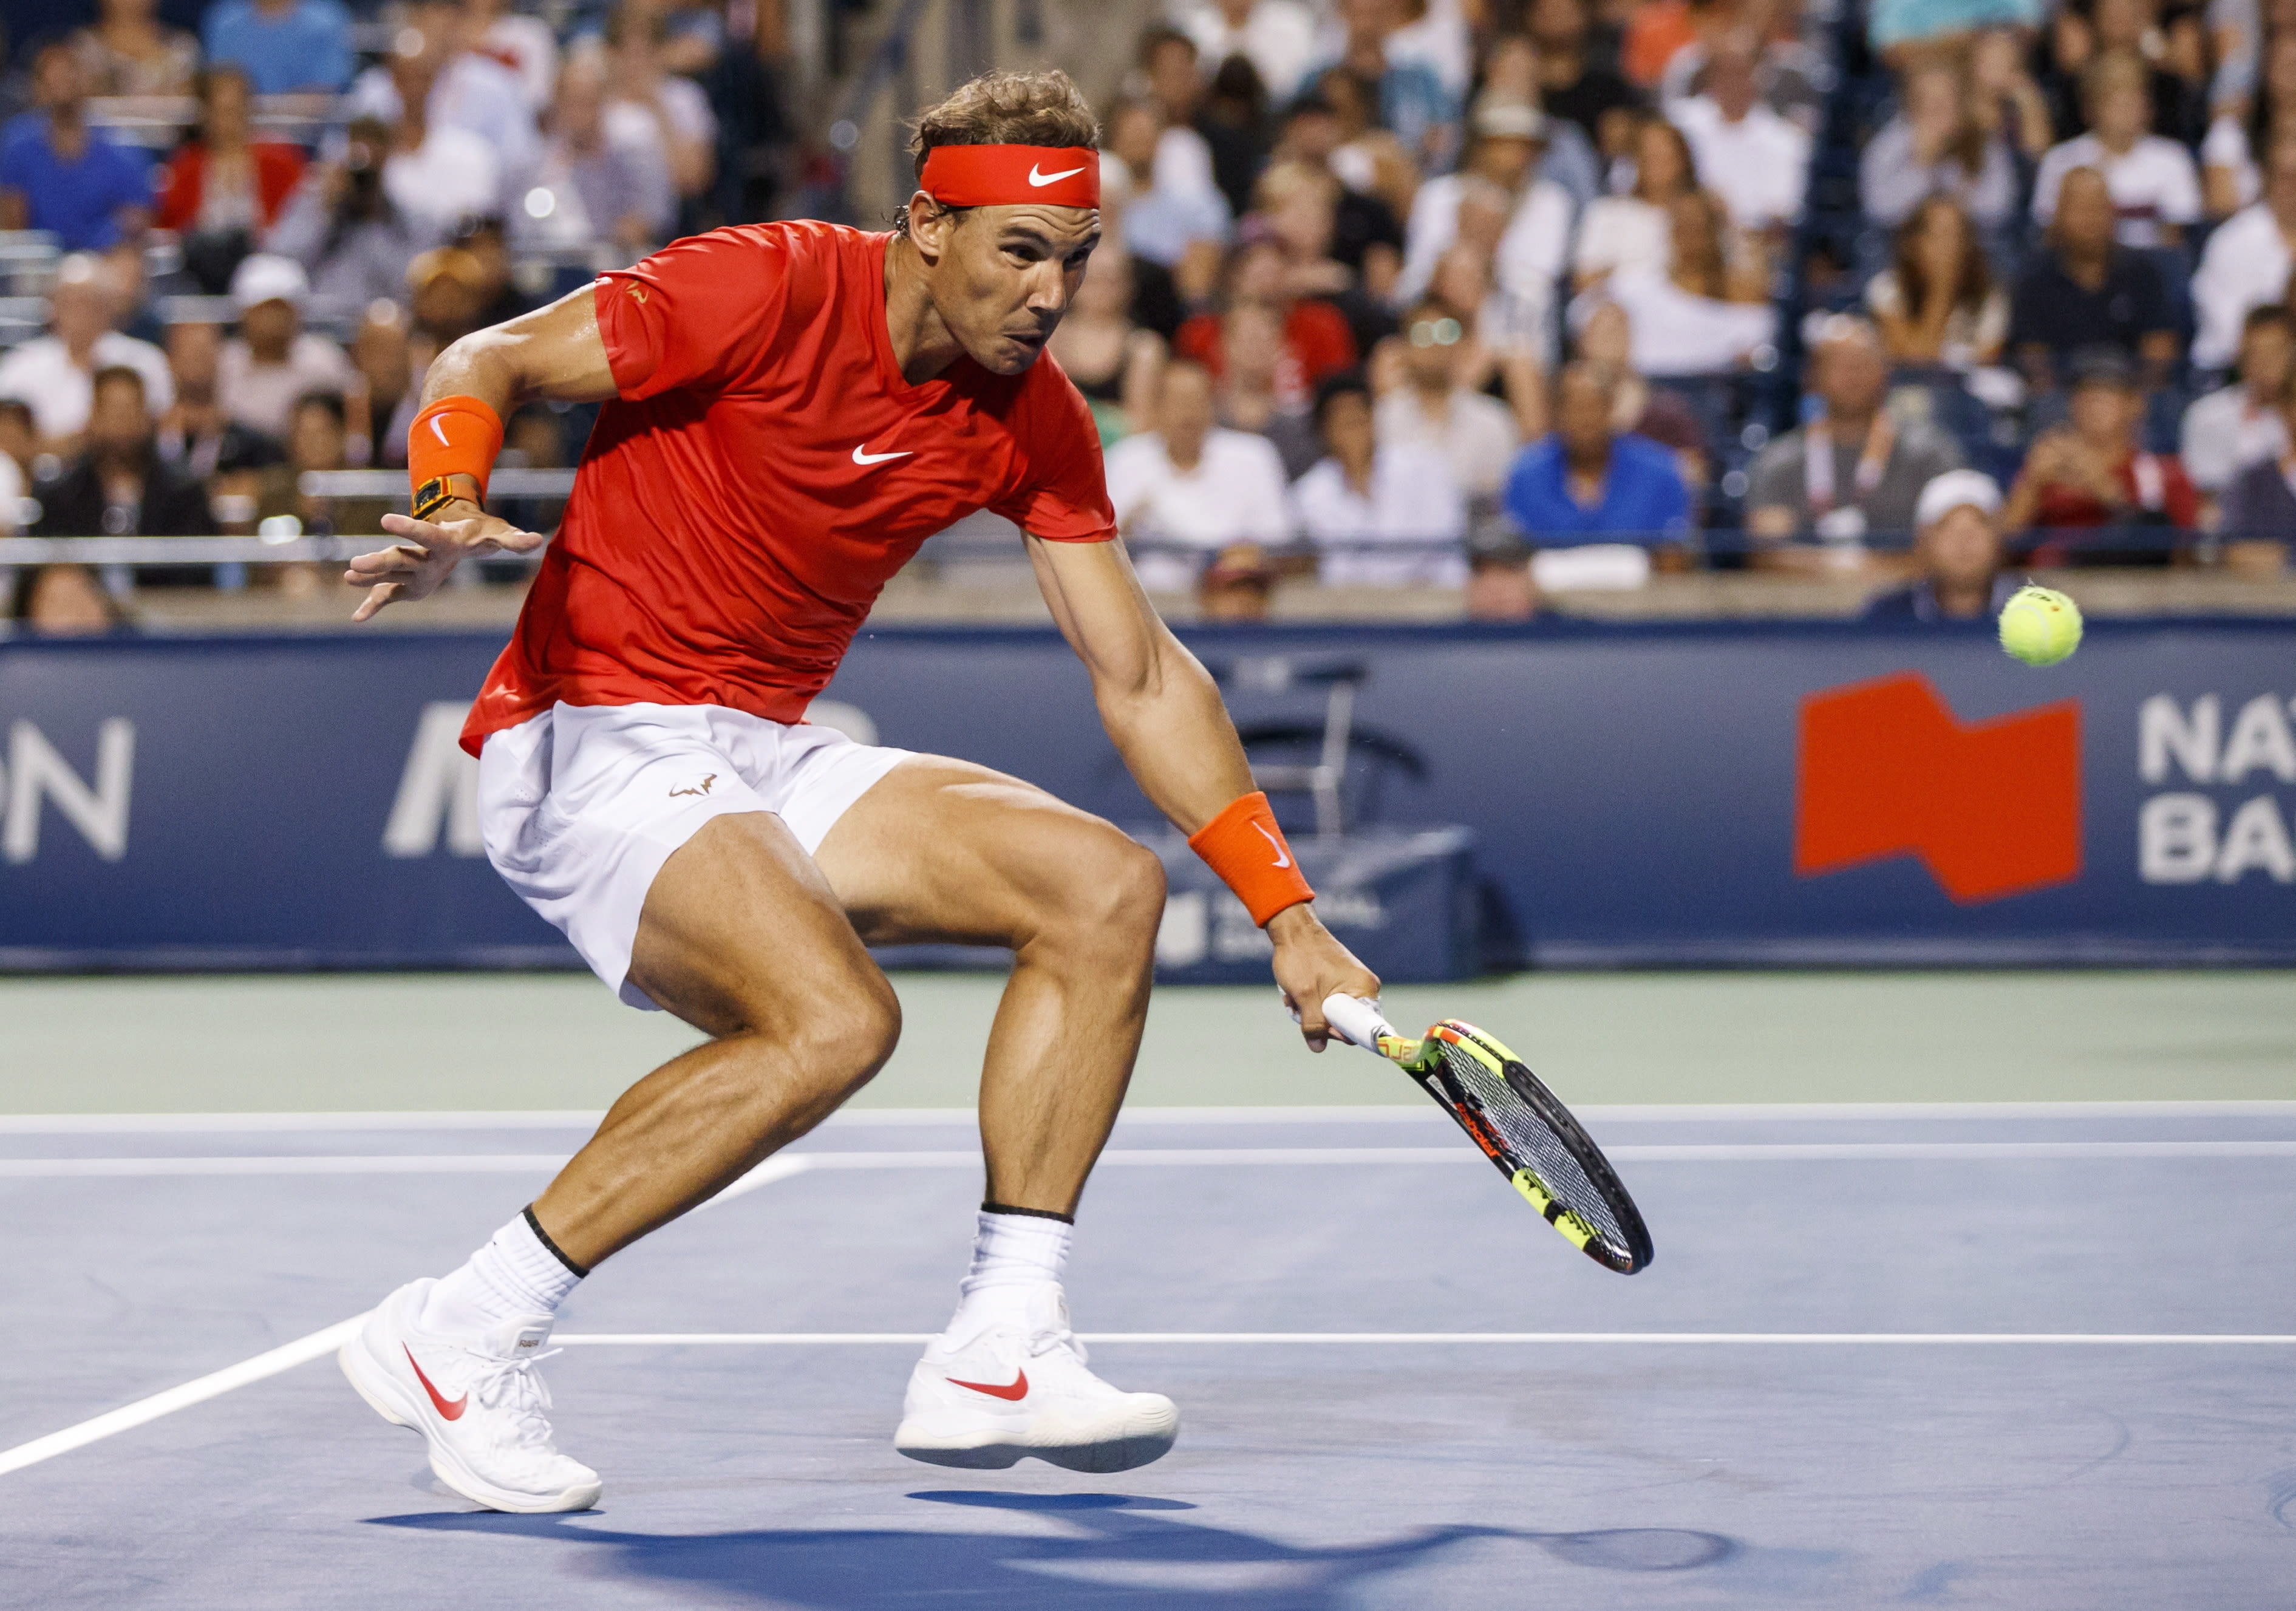 Rafael Nadal, of Spain, returns a shot to Benoit Paire, of France, during the Rogers Cup men's tennis tournament in Toronto, Wednesday, Aug. 8, 2018. (Mark Blinch/The Canadian Press via AP